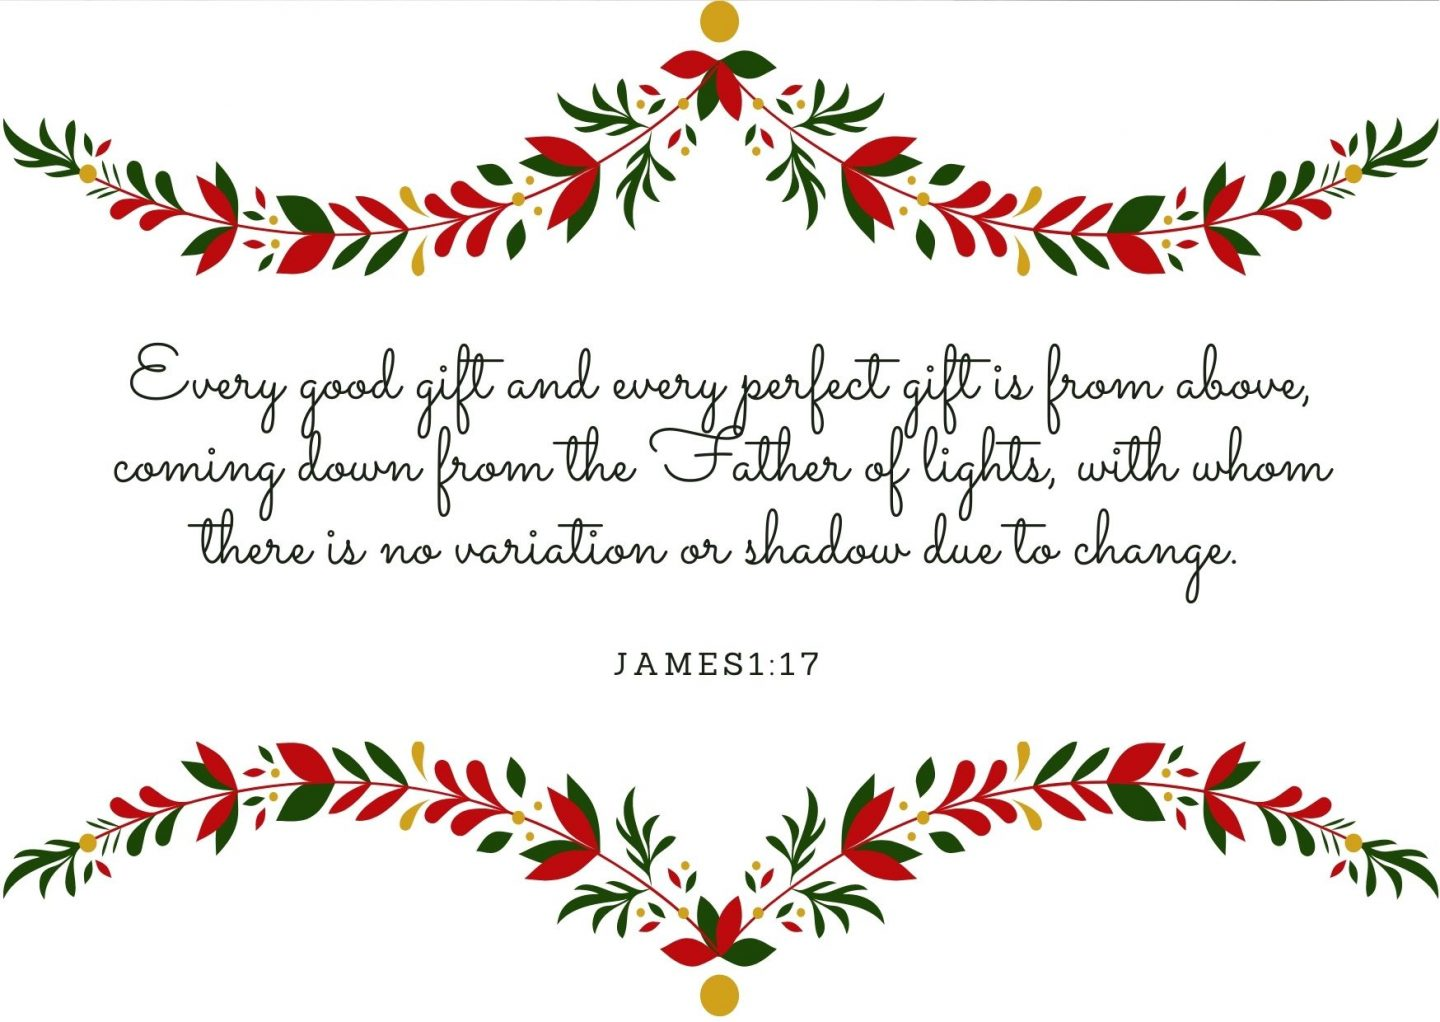 Every good gift and every perfect gift is from above, coming down from the Father of lights, with whom there is no variation or shadow due to change. James1:17